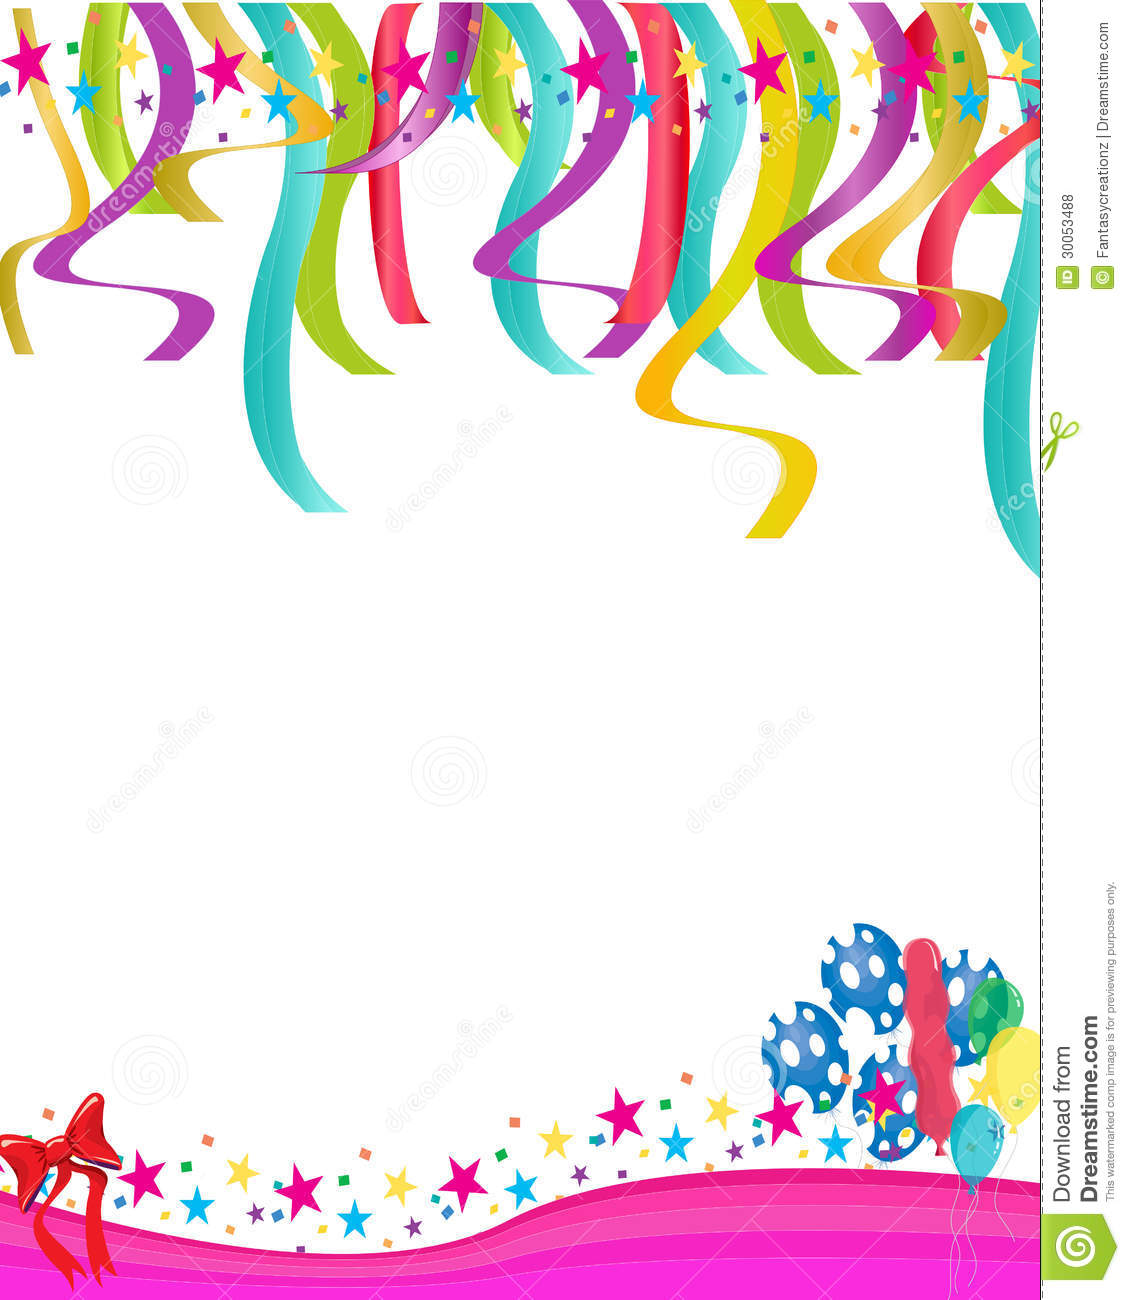 Party invitation Birthday Party Background Design 1130x1300